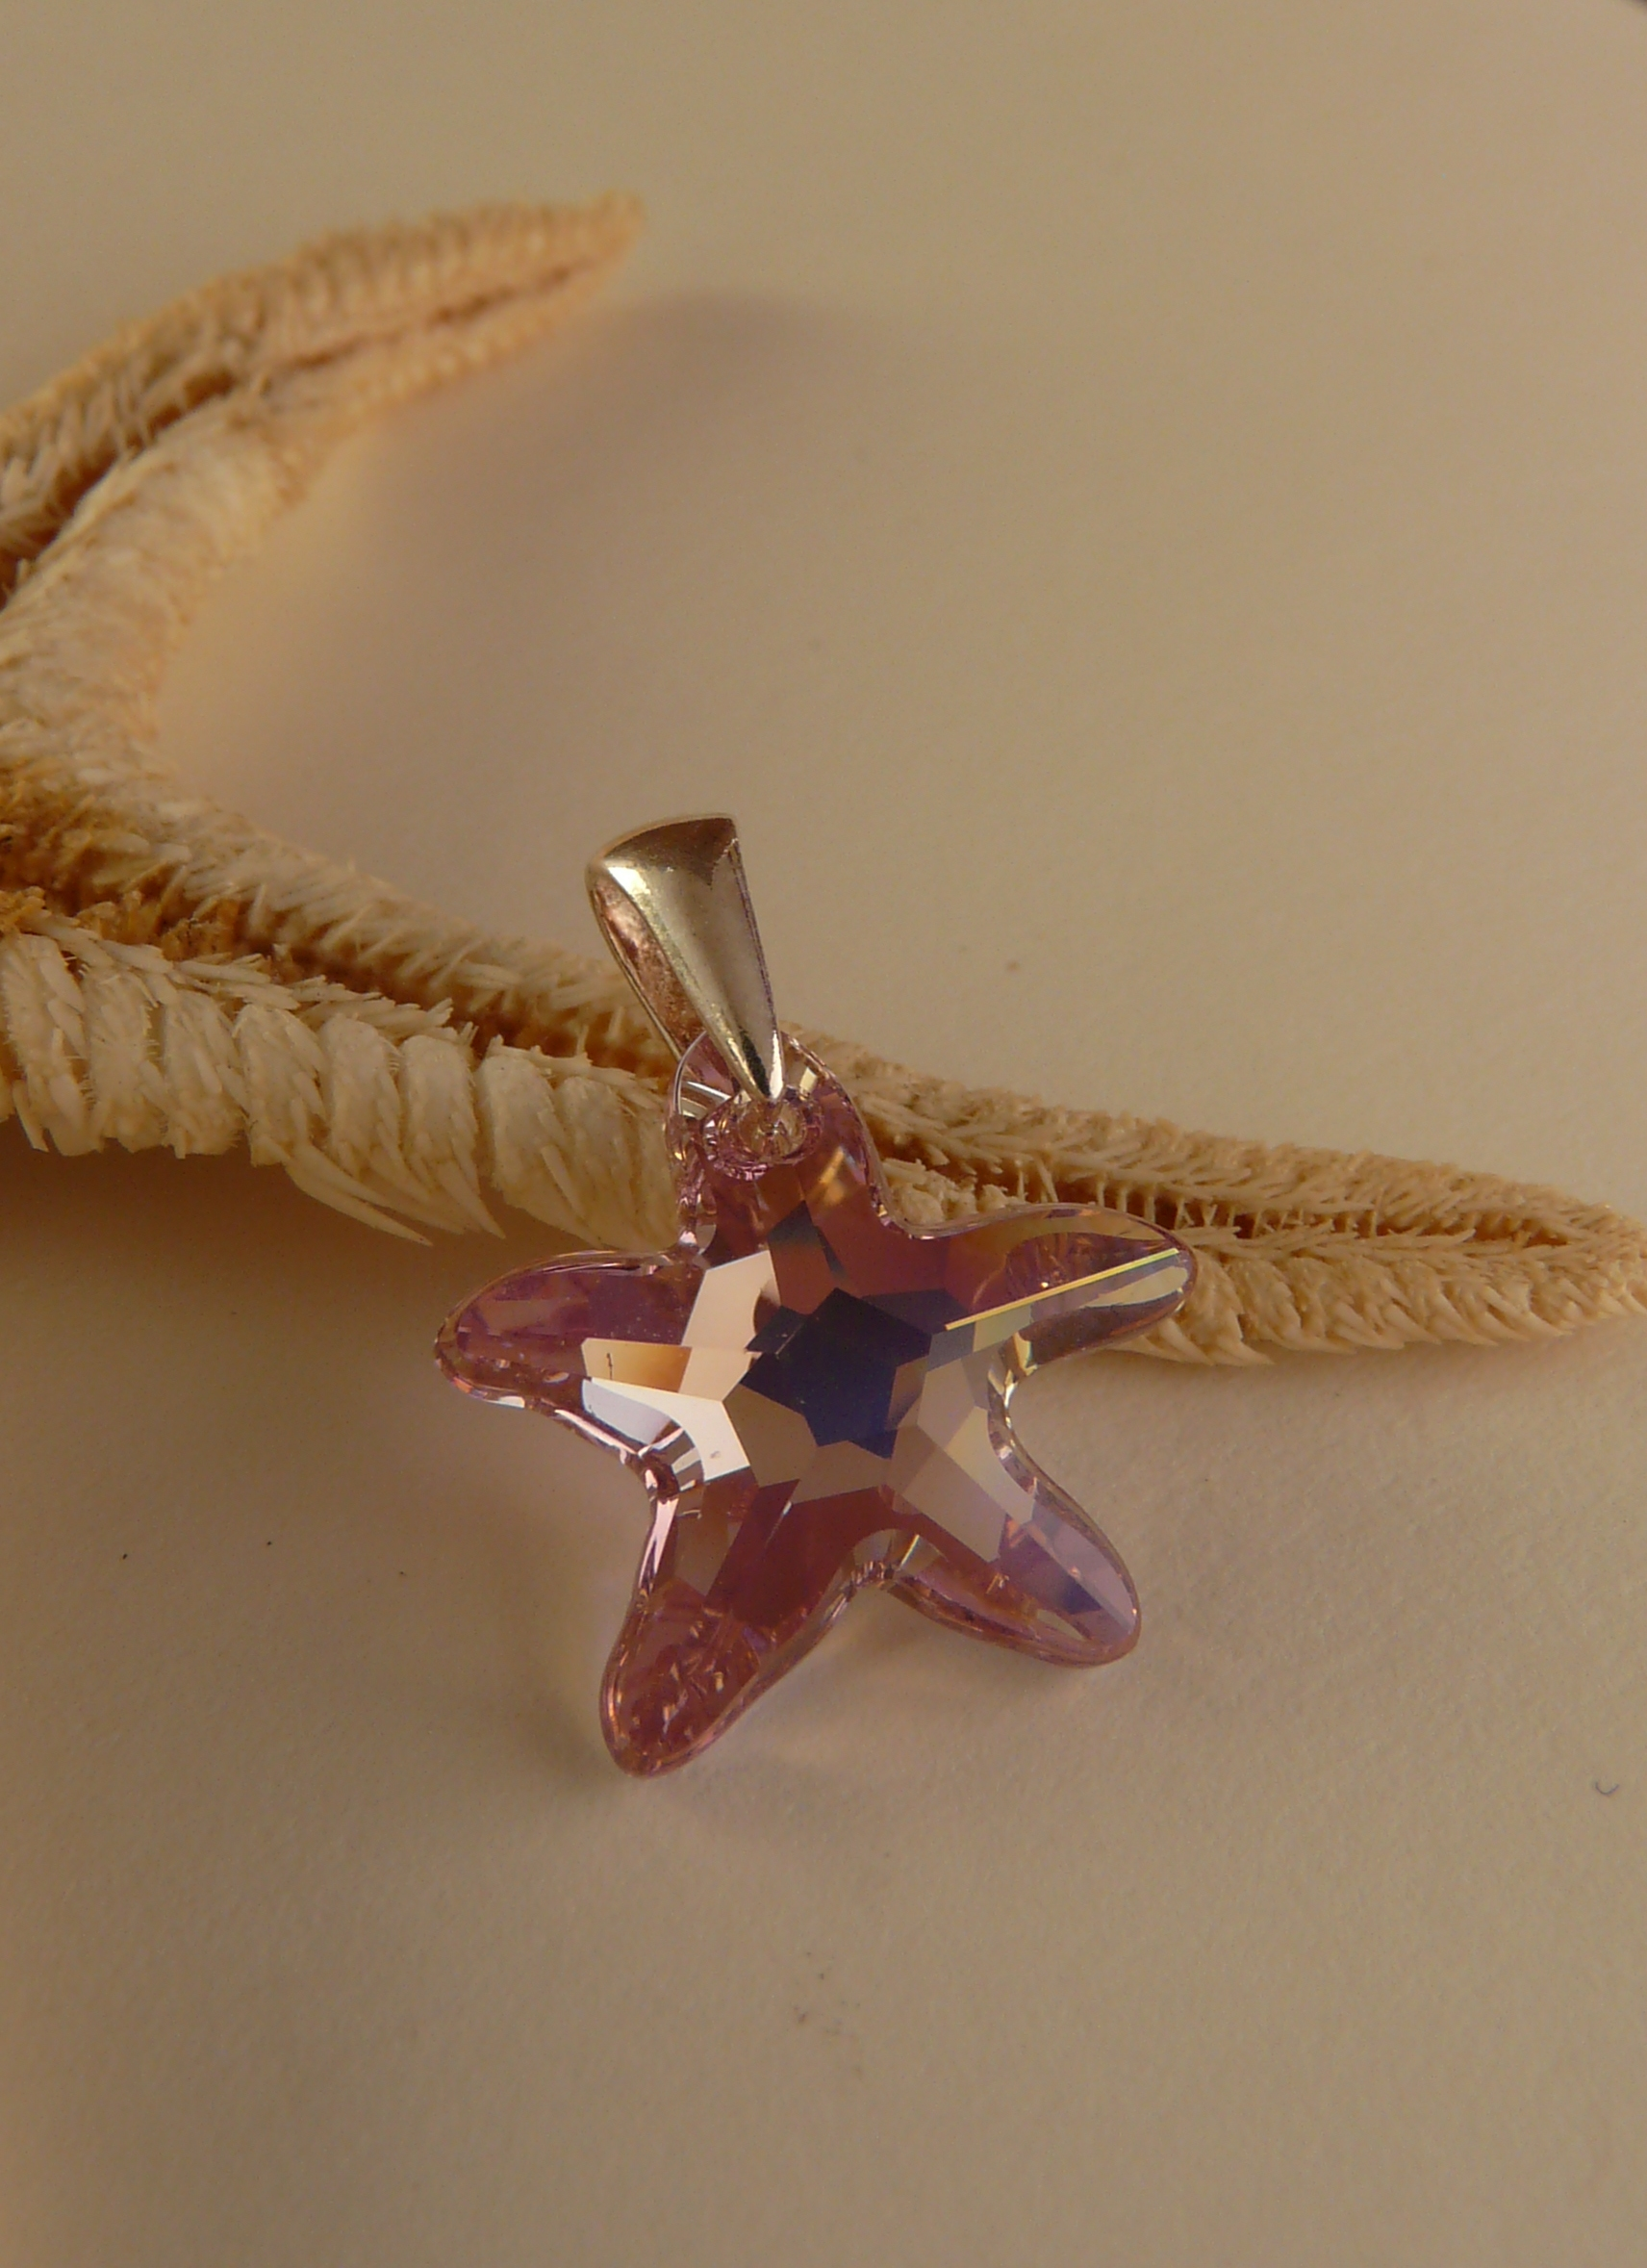 Prívesok Starfish Light Amethyst Swarovski Elements sw077 striebro 925 0,44g